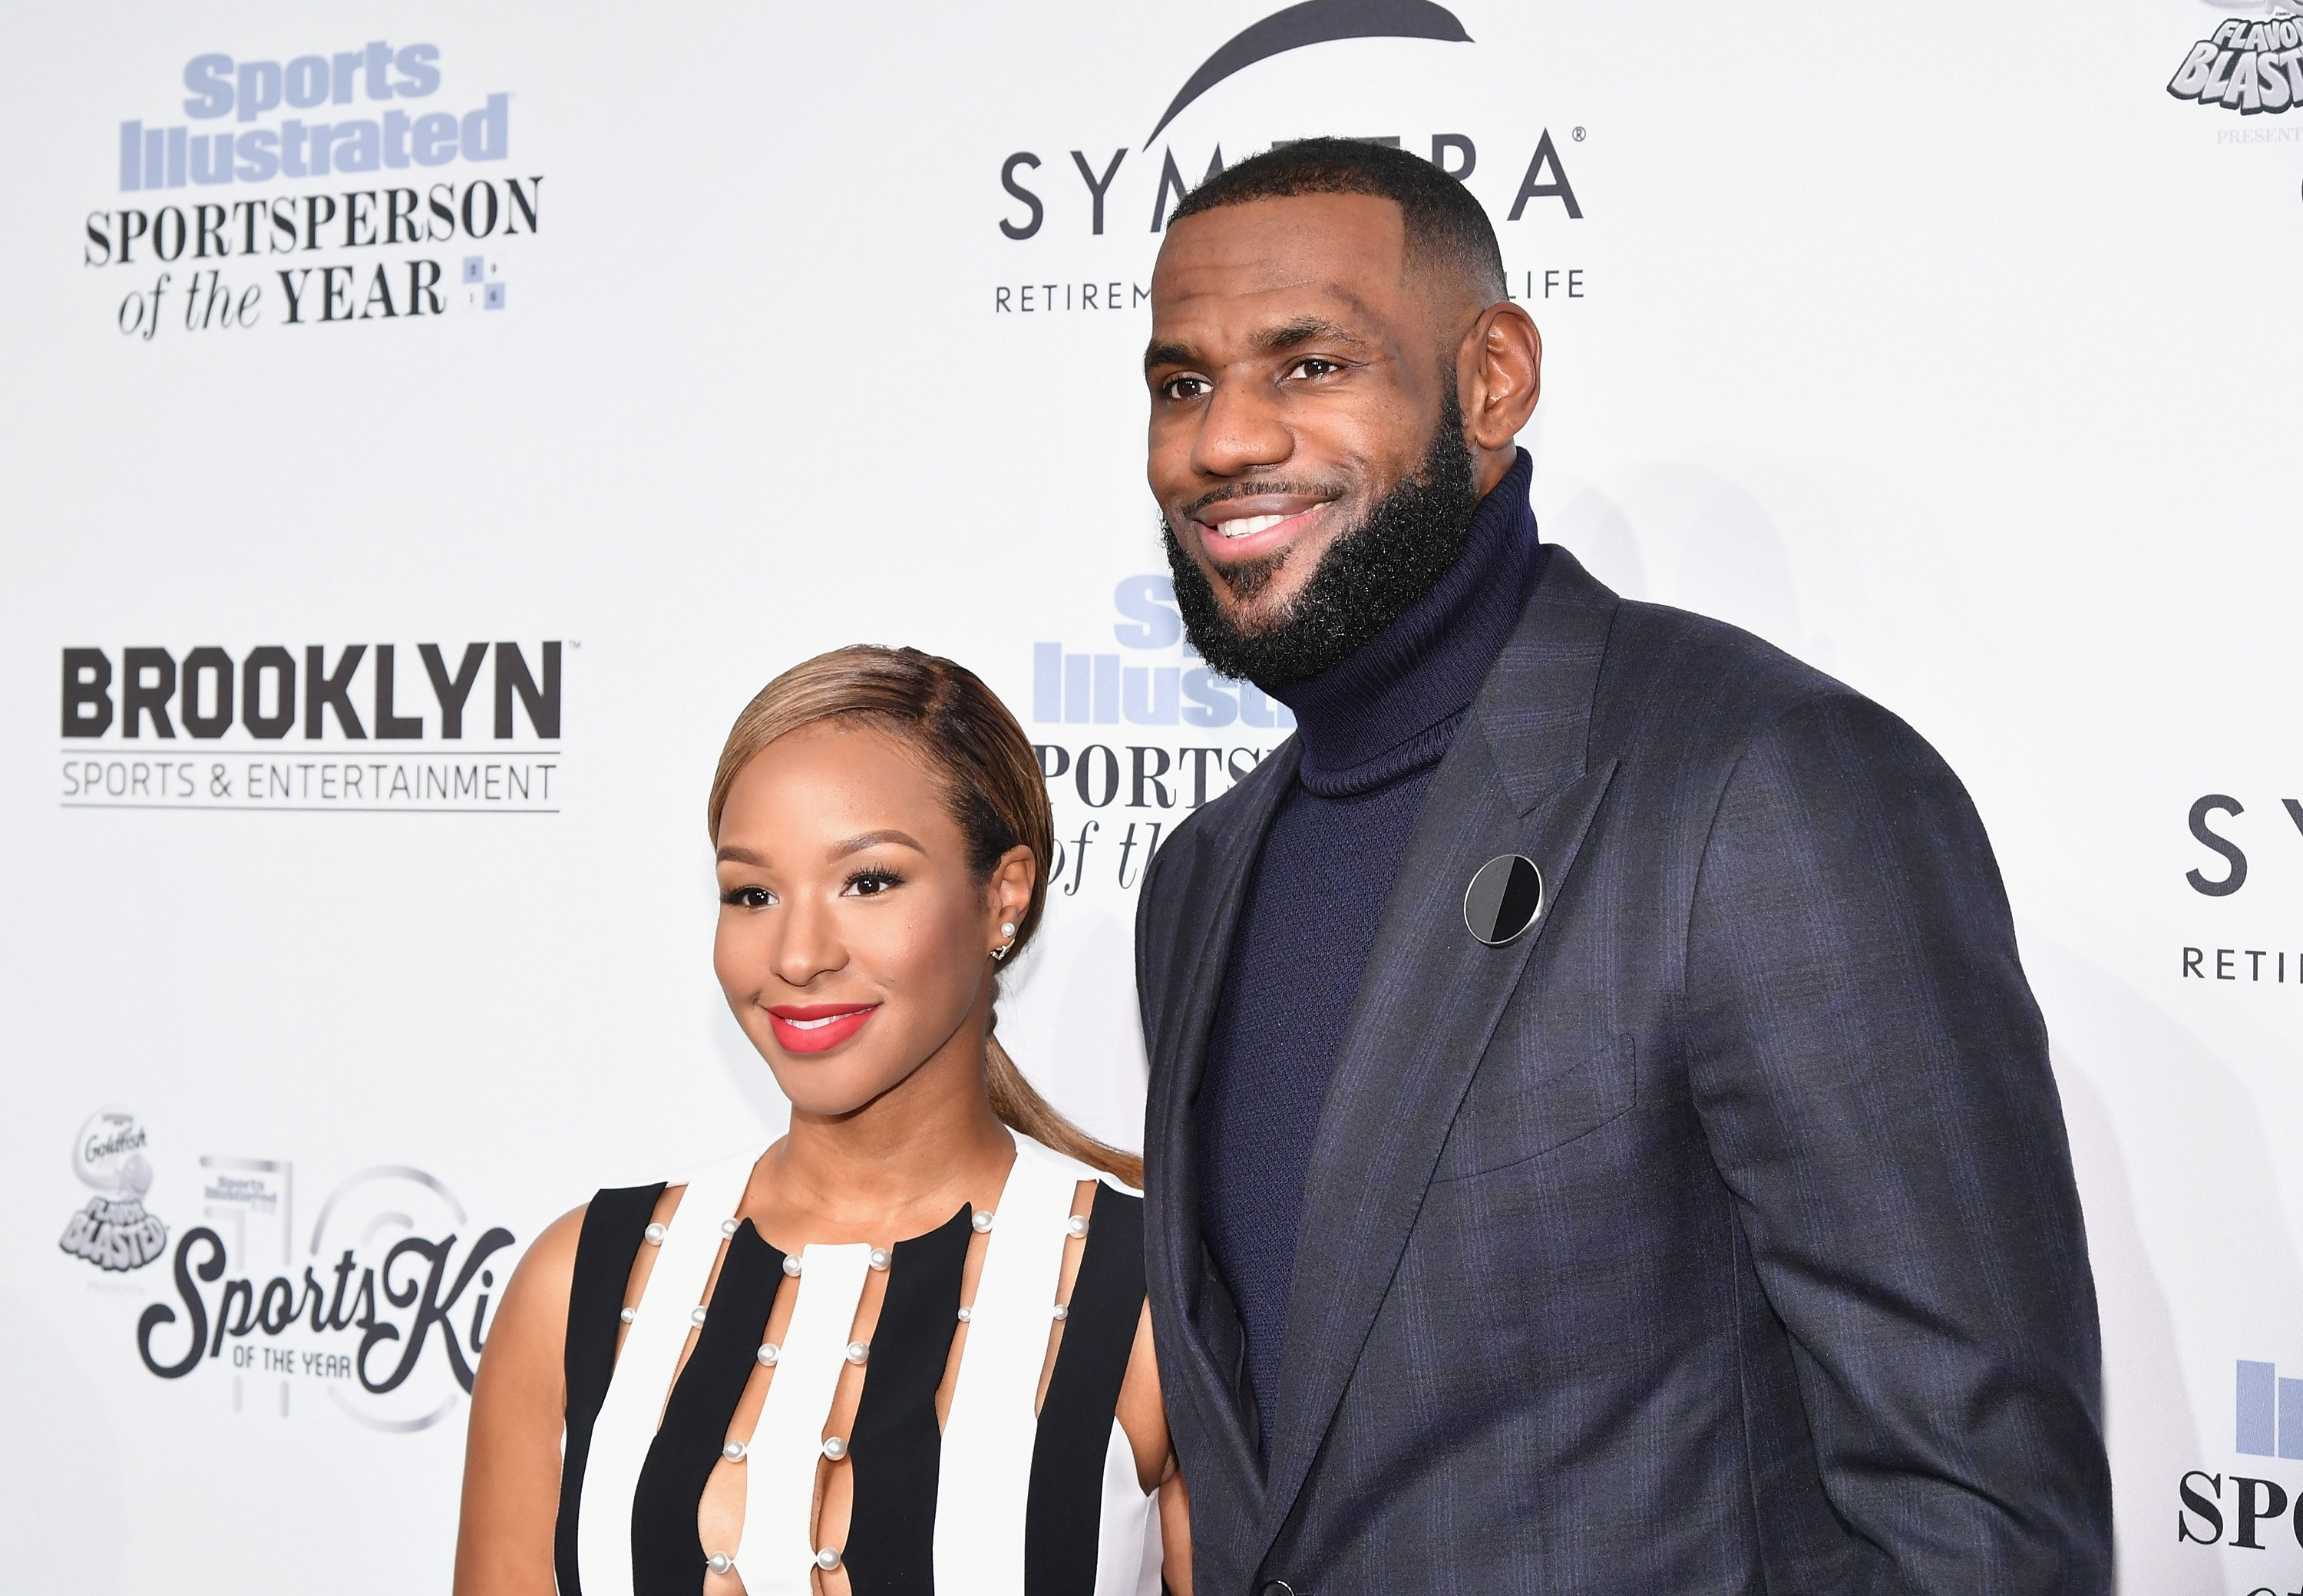 Savannah Brinson and basketball player Lebron James at the Sports Illustrated Sportsperson of the Year 2016 at the Barclays Center in Brooklyn on December 12, 2016 in New York City |  Photo: Getty Images